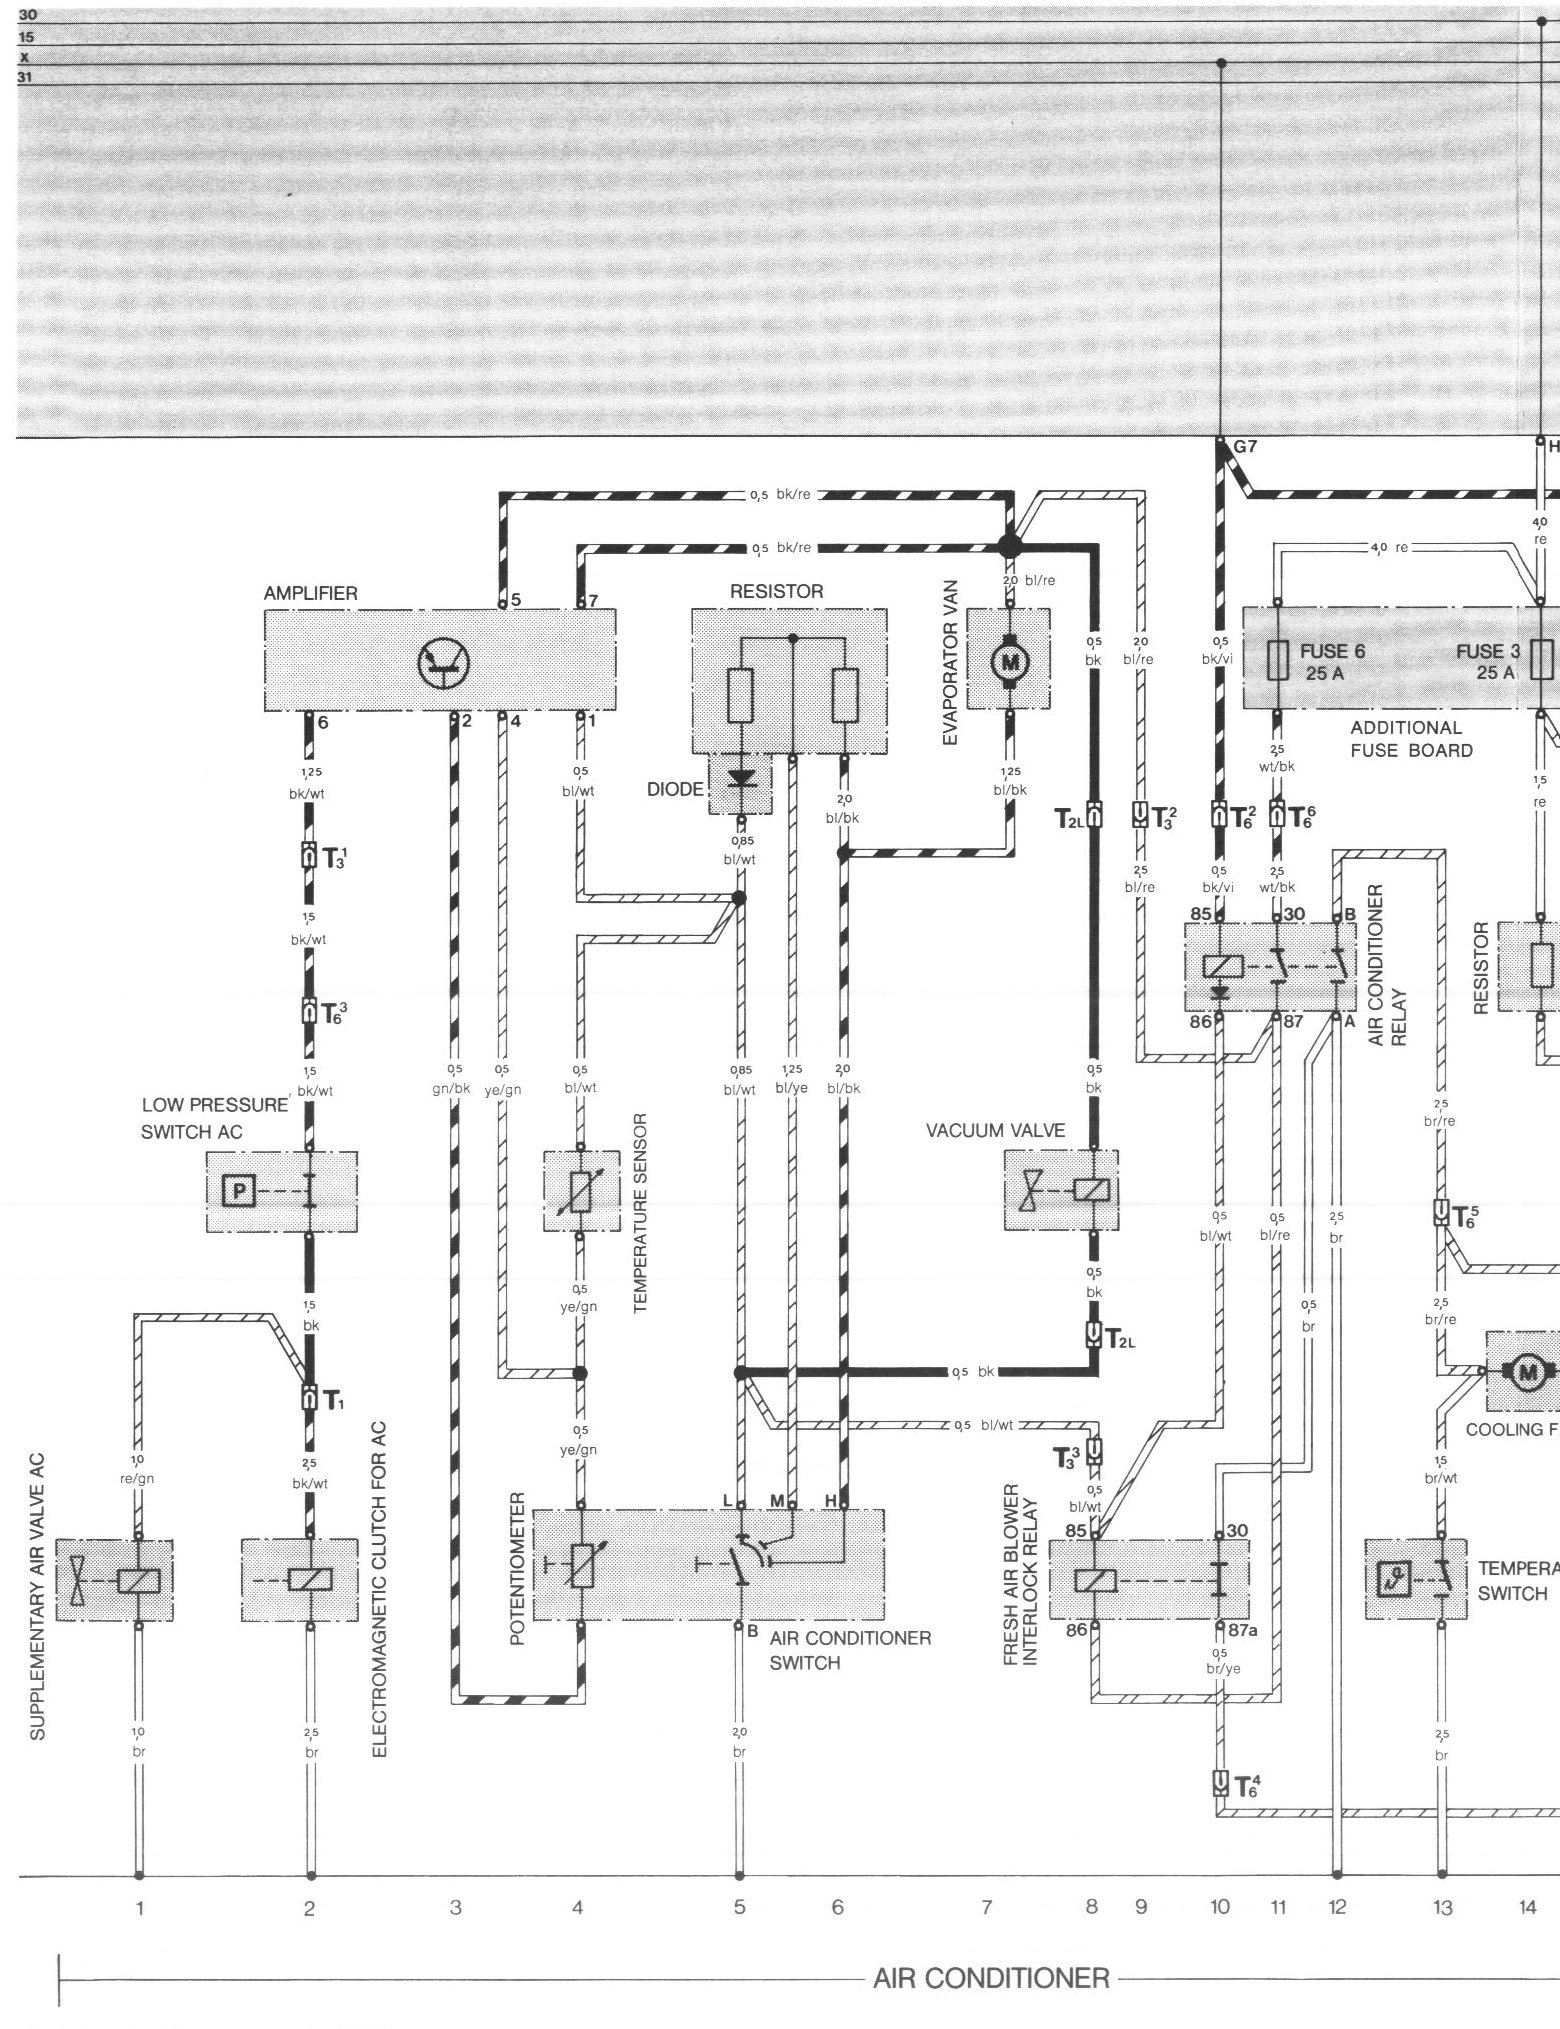 small resolution of 84 944 fuse box diagram wiring librarypelican parts porsche 924 944 electrical diagrams porsche 944 fuse